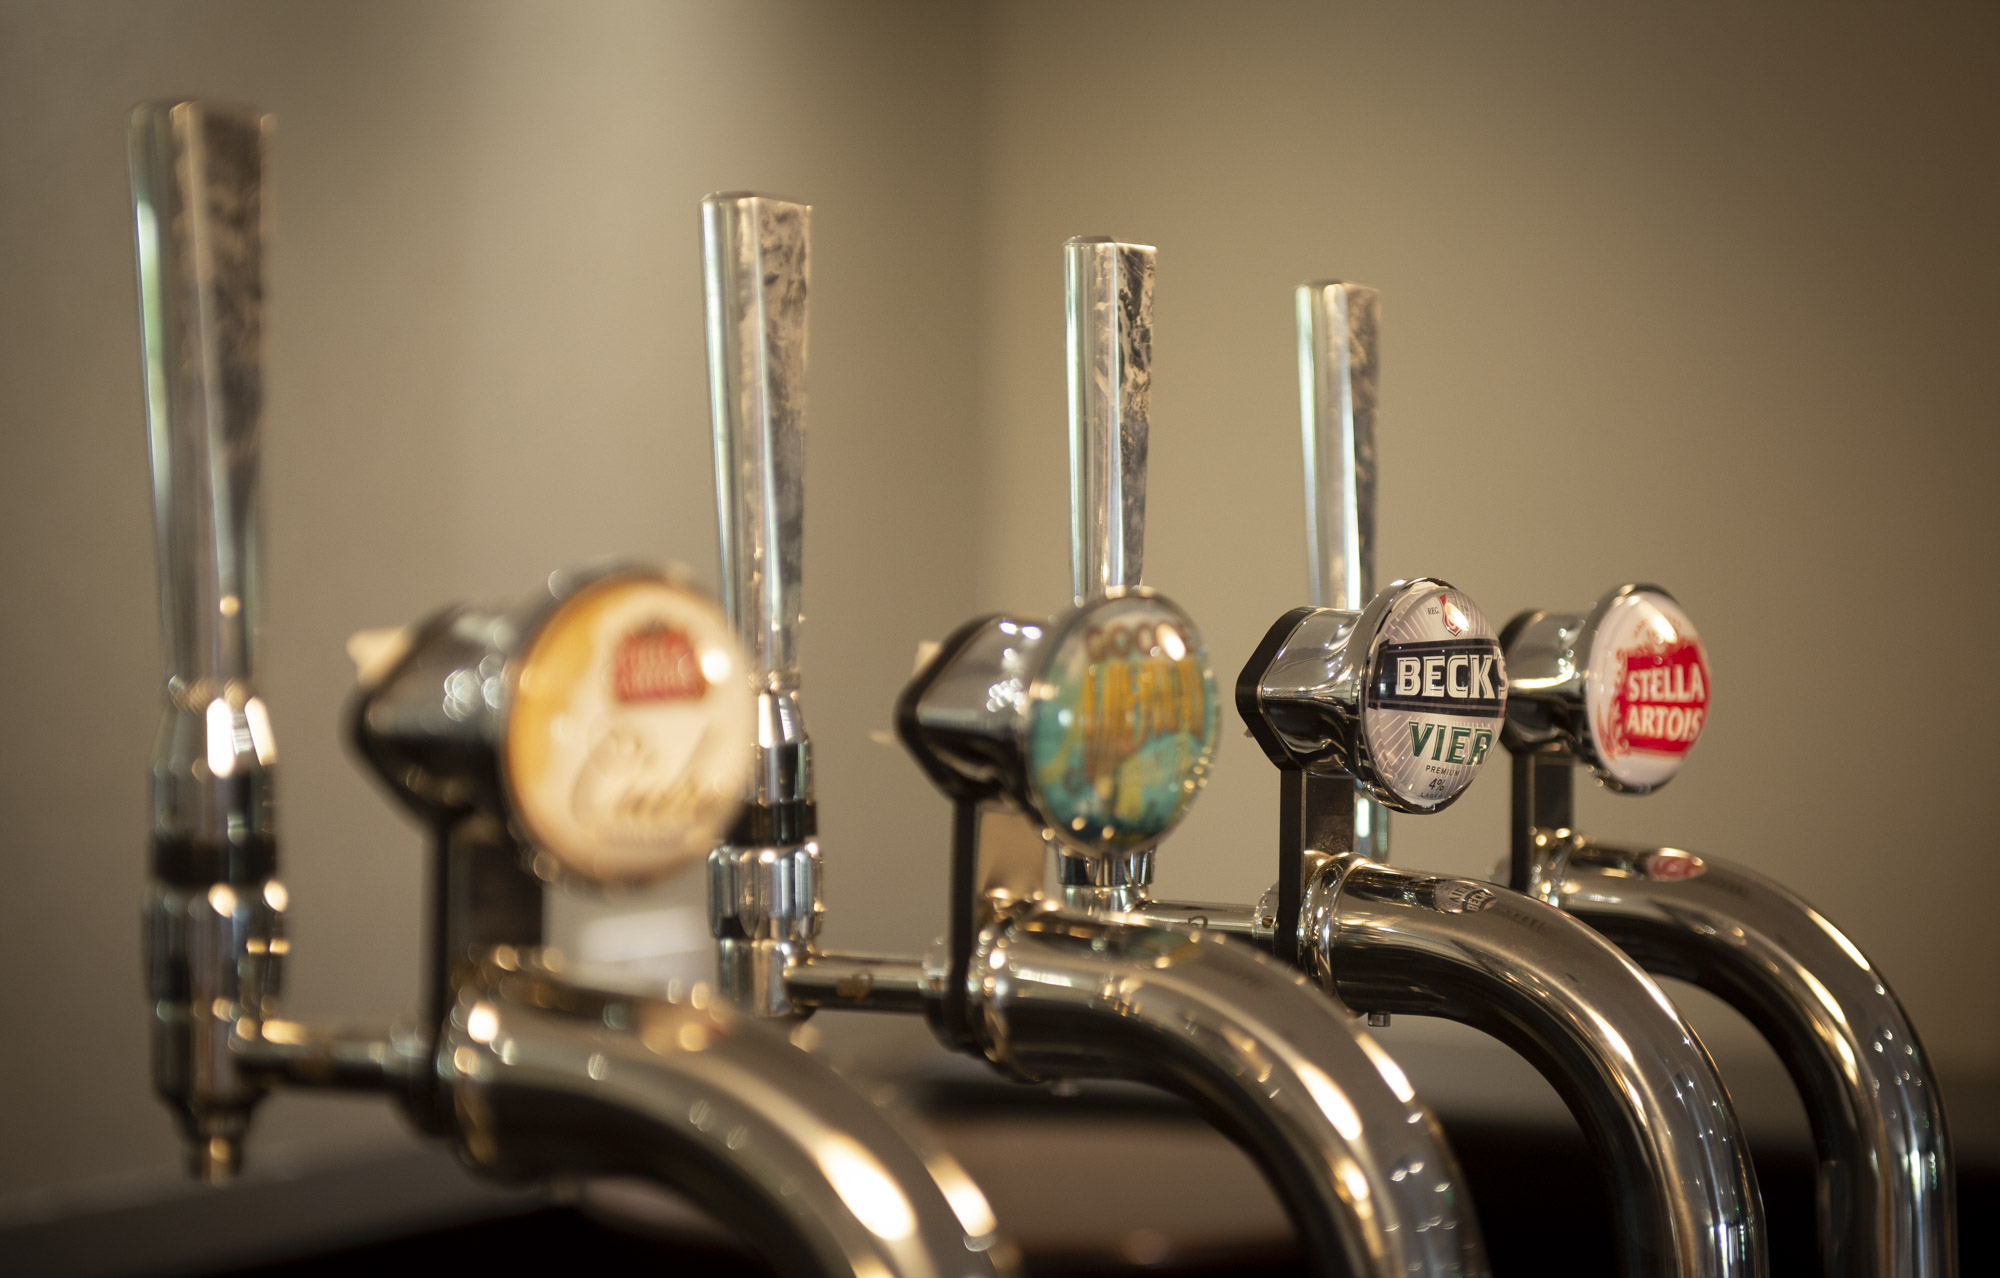 Becks beer on tap at the Crowne Plaza Hotel Stratford upon Avon by Charlie Budd The Tall Photographer